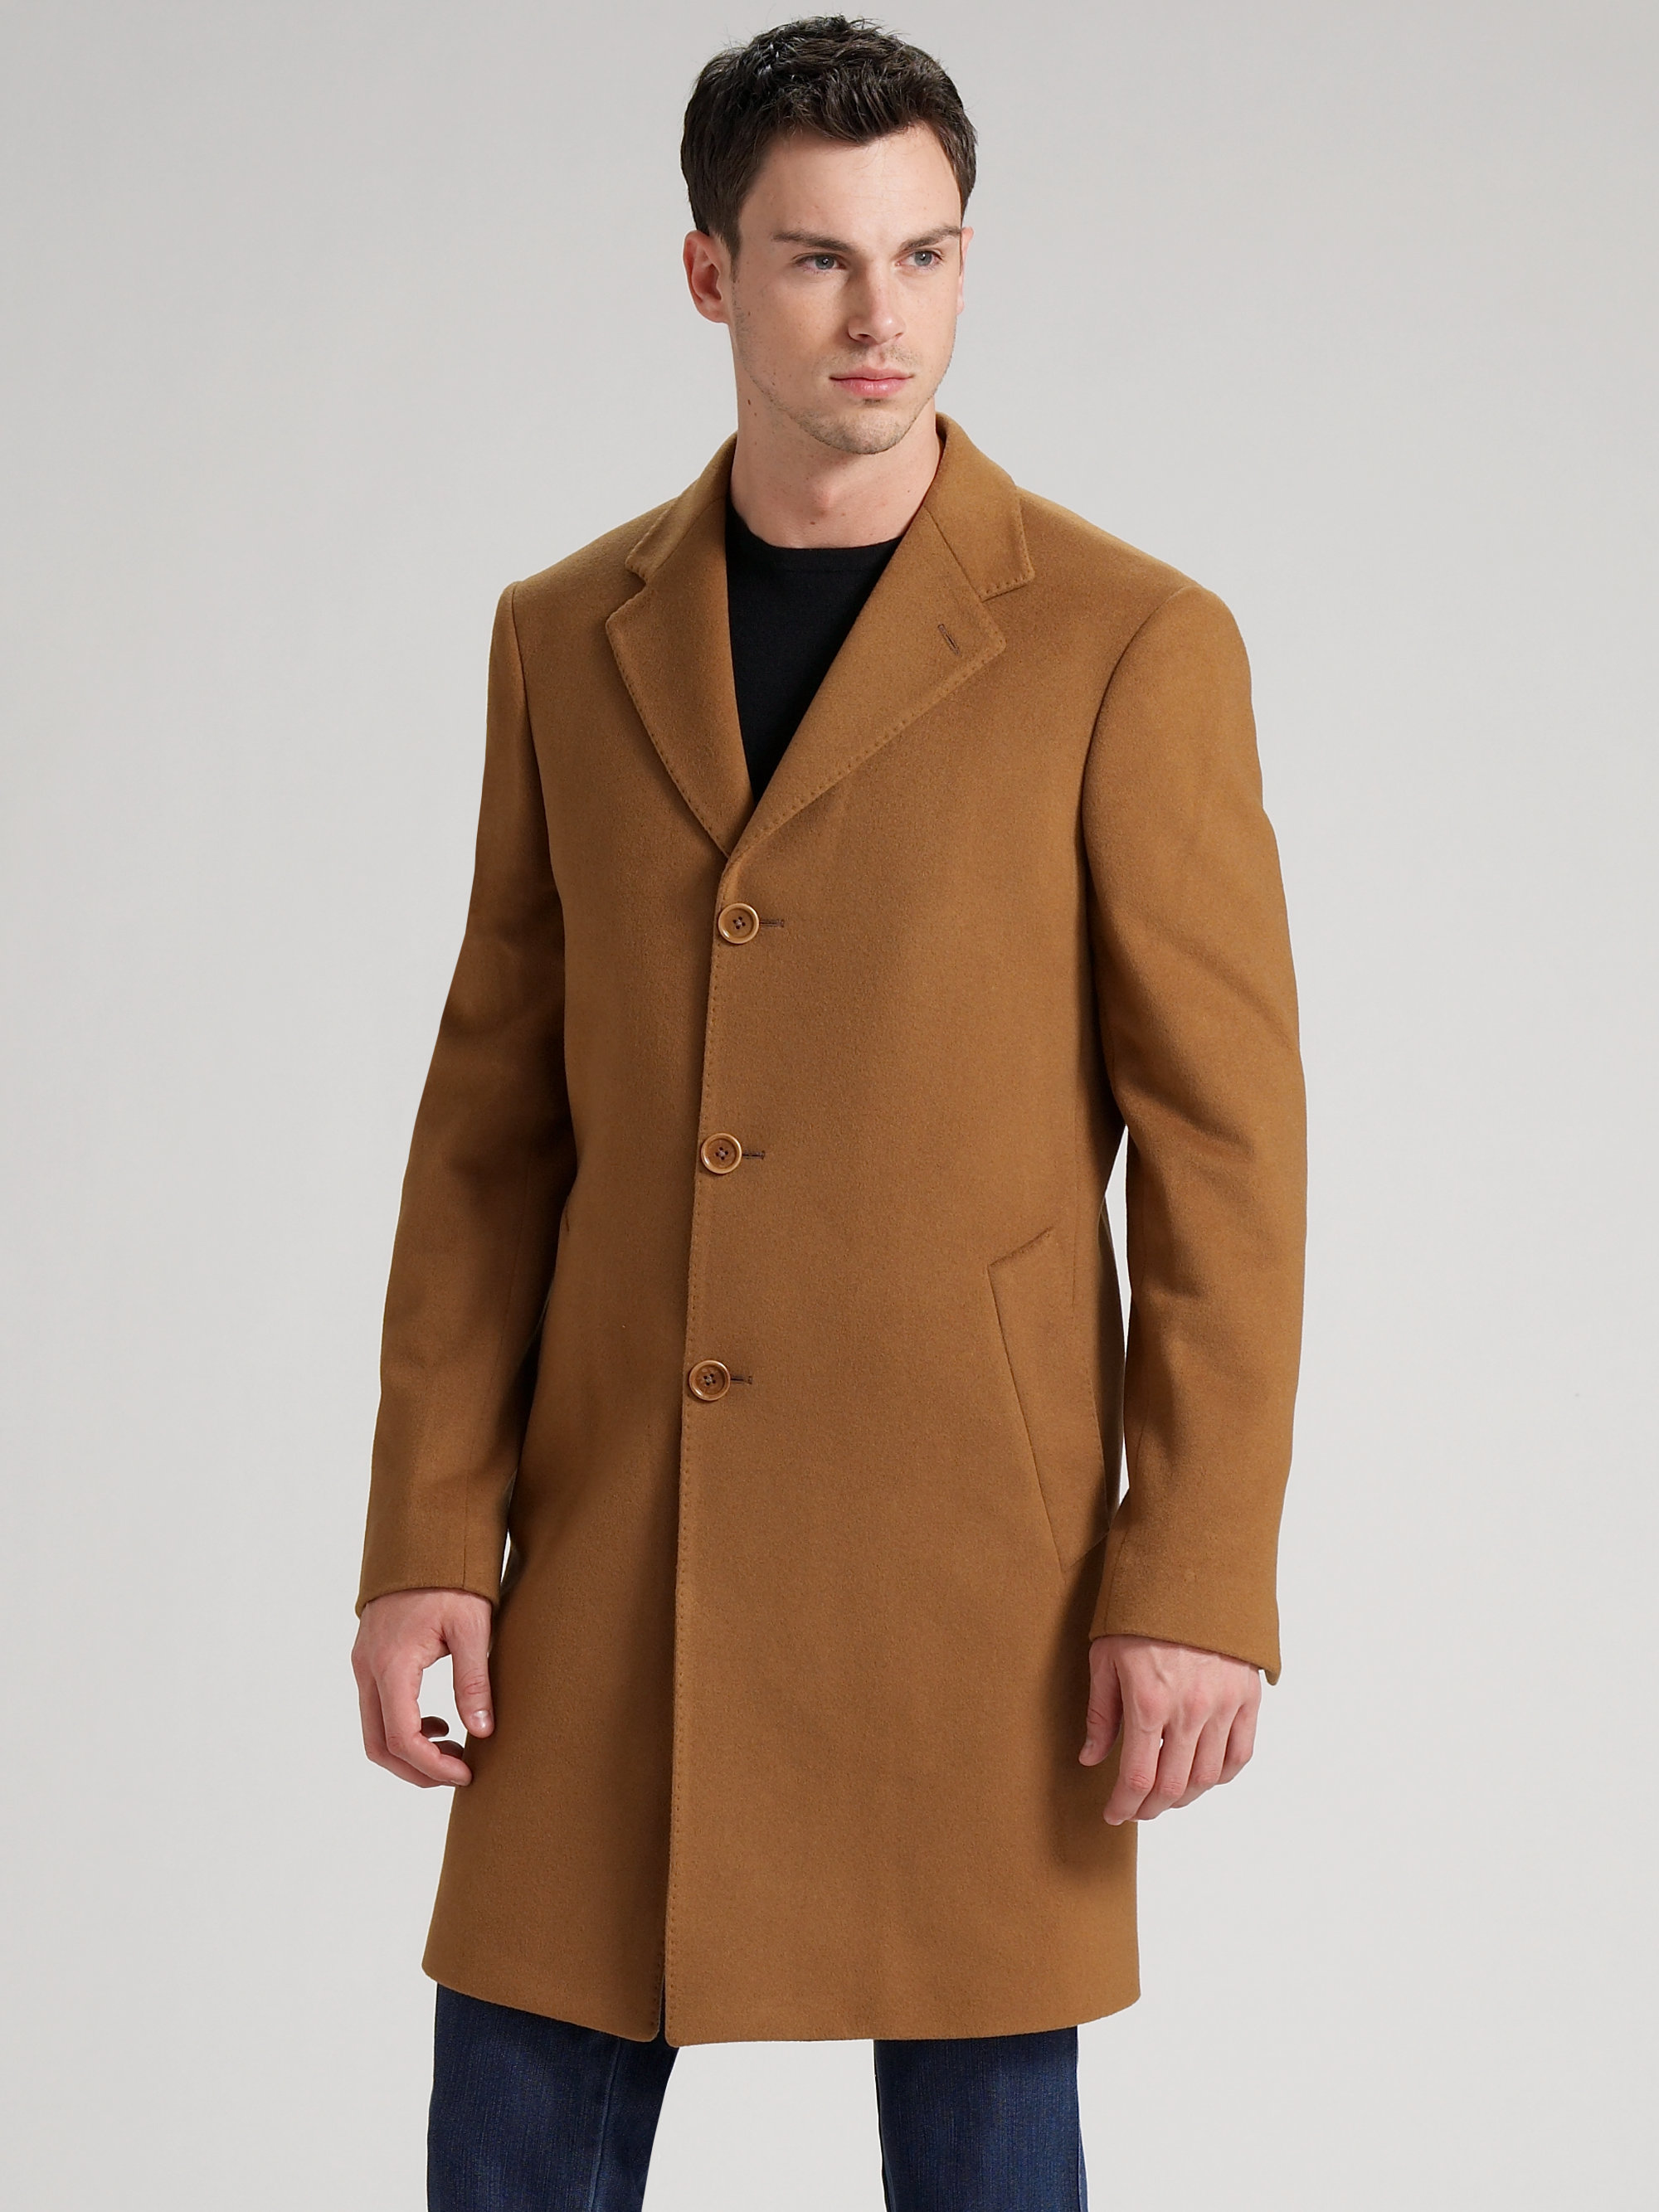 Saks fifth avenue Cashmere Topcoat in Brown for Men | Lyst